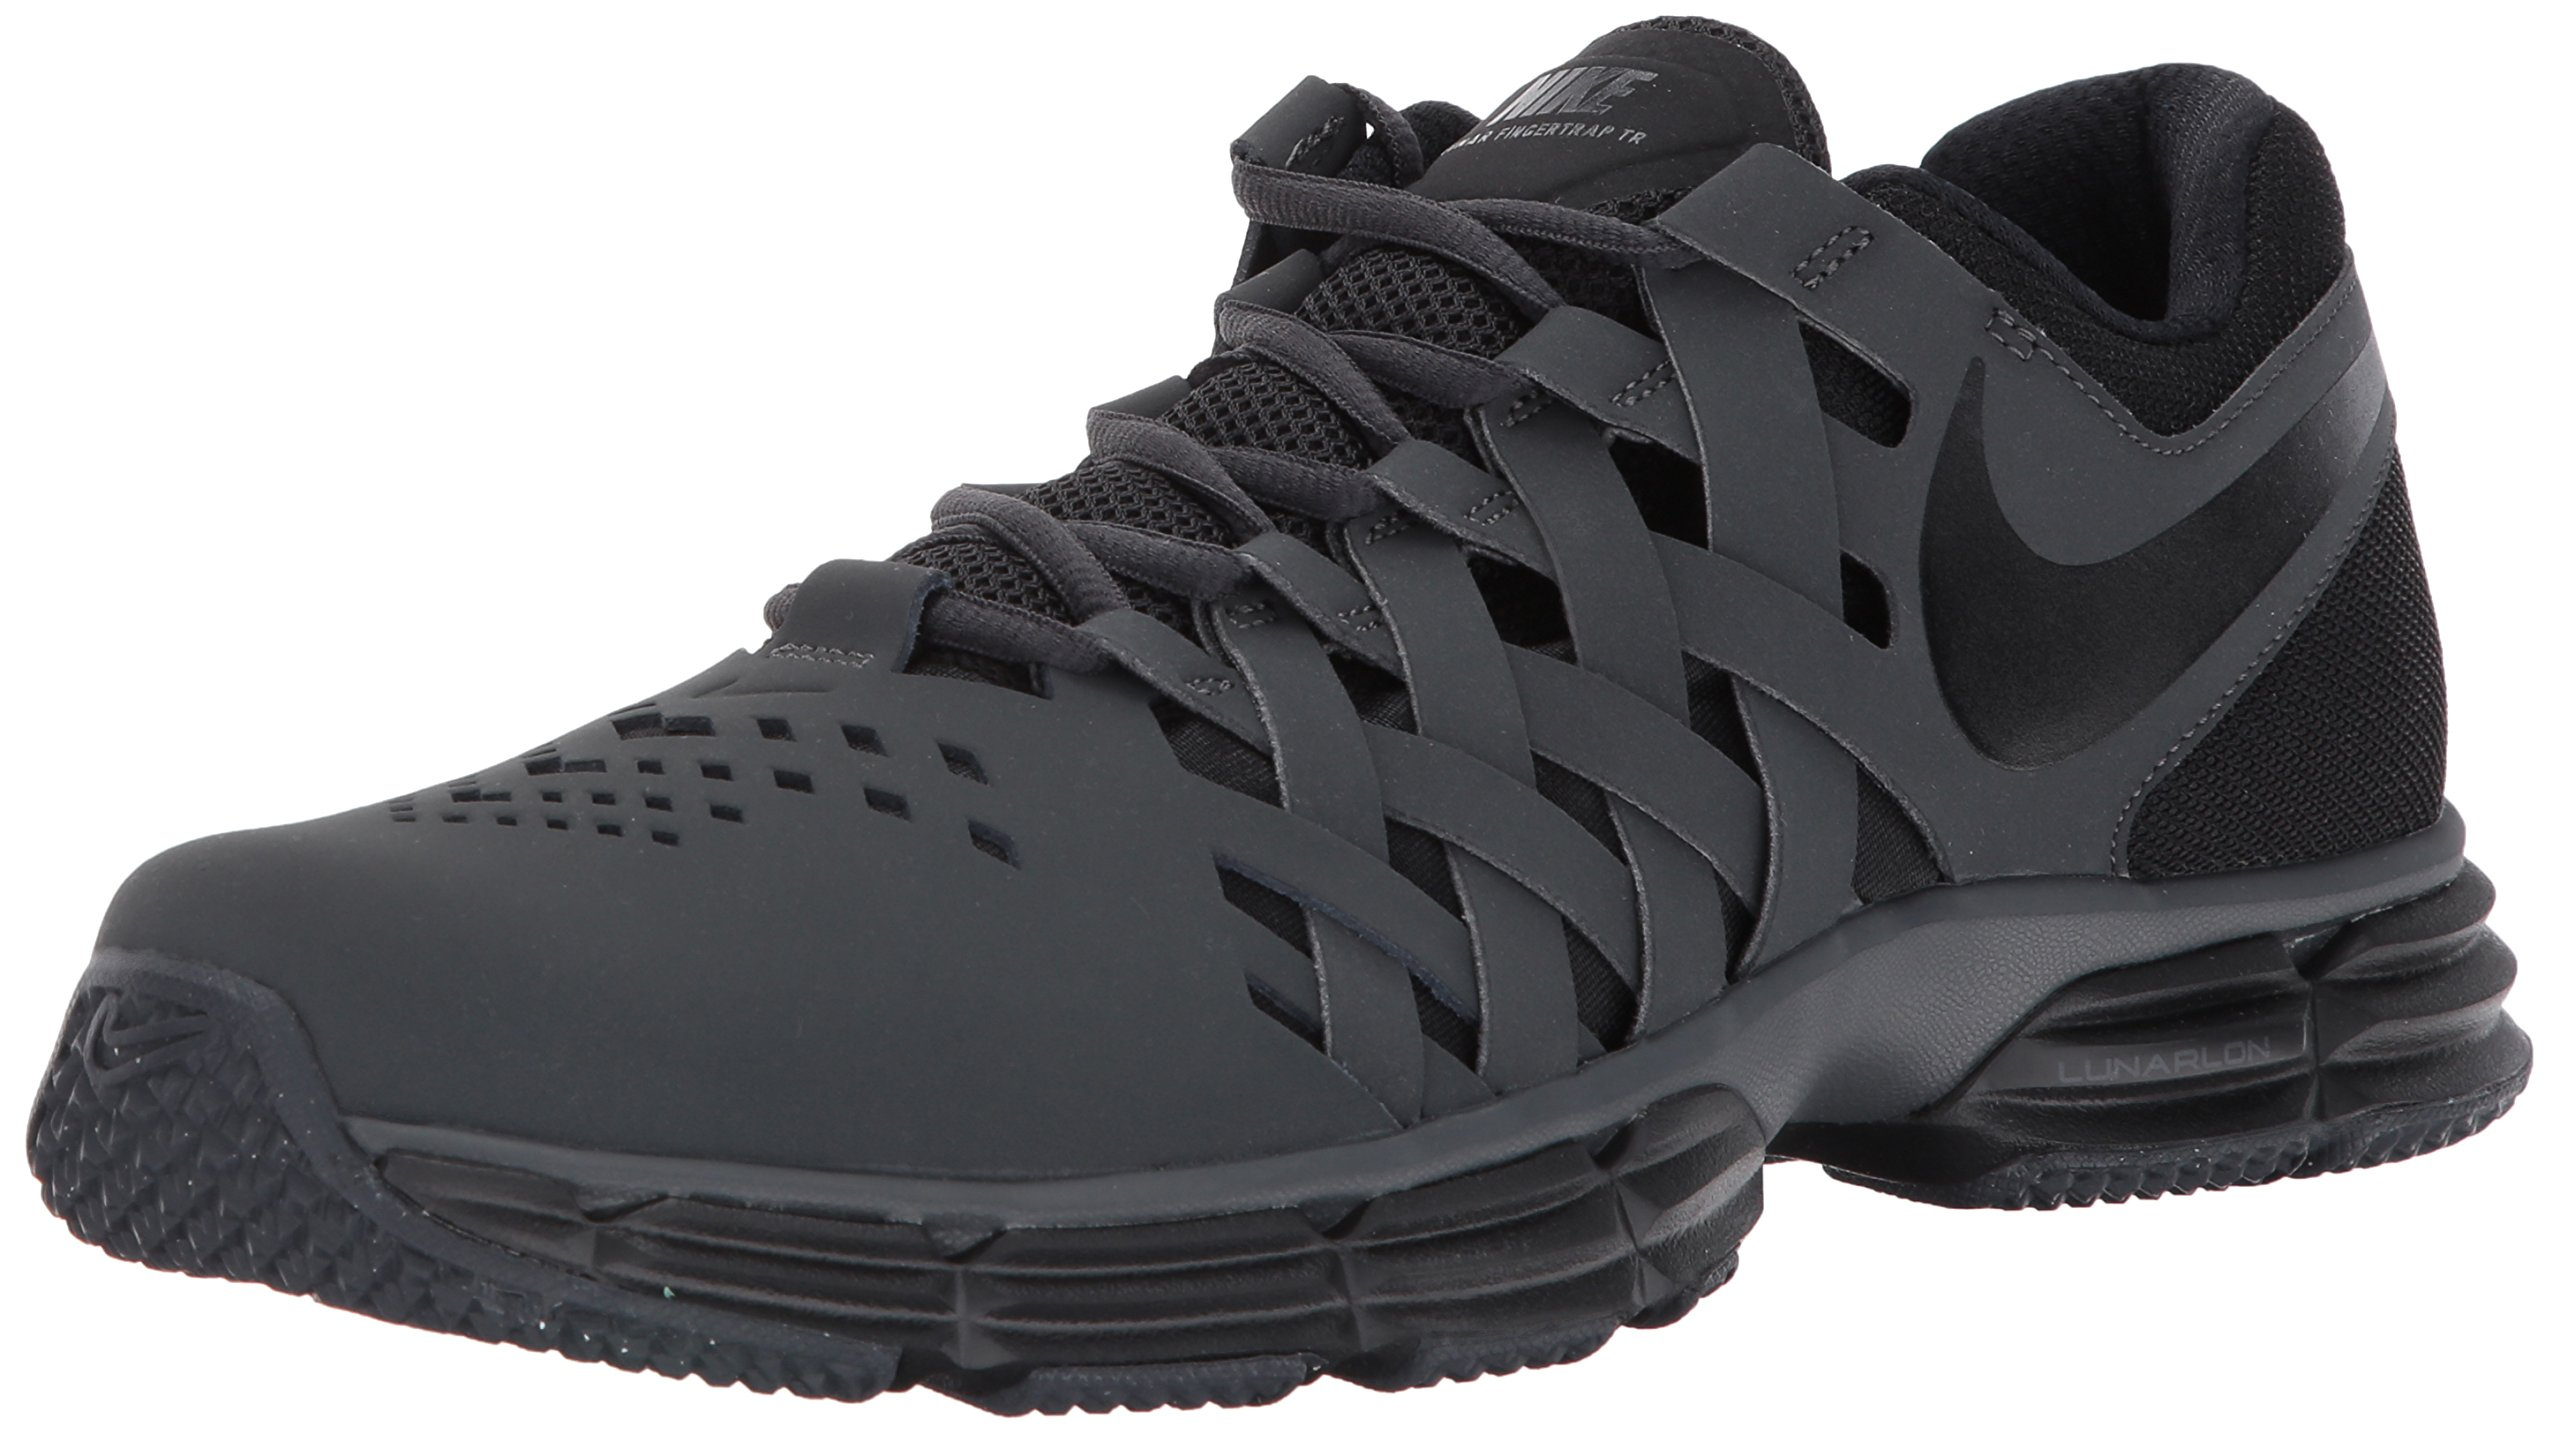 Nike Men's Lunar Fingertrap Cross Trainer, Anthracite/Black, 6.5 Regular US